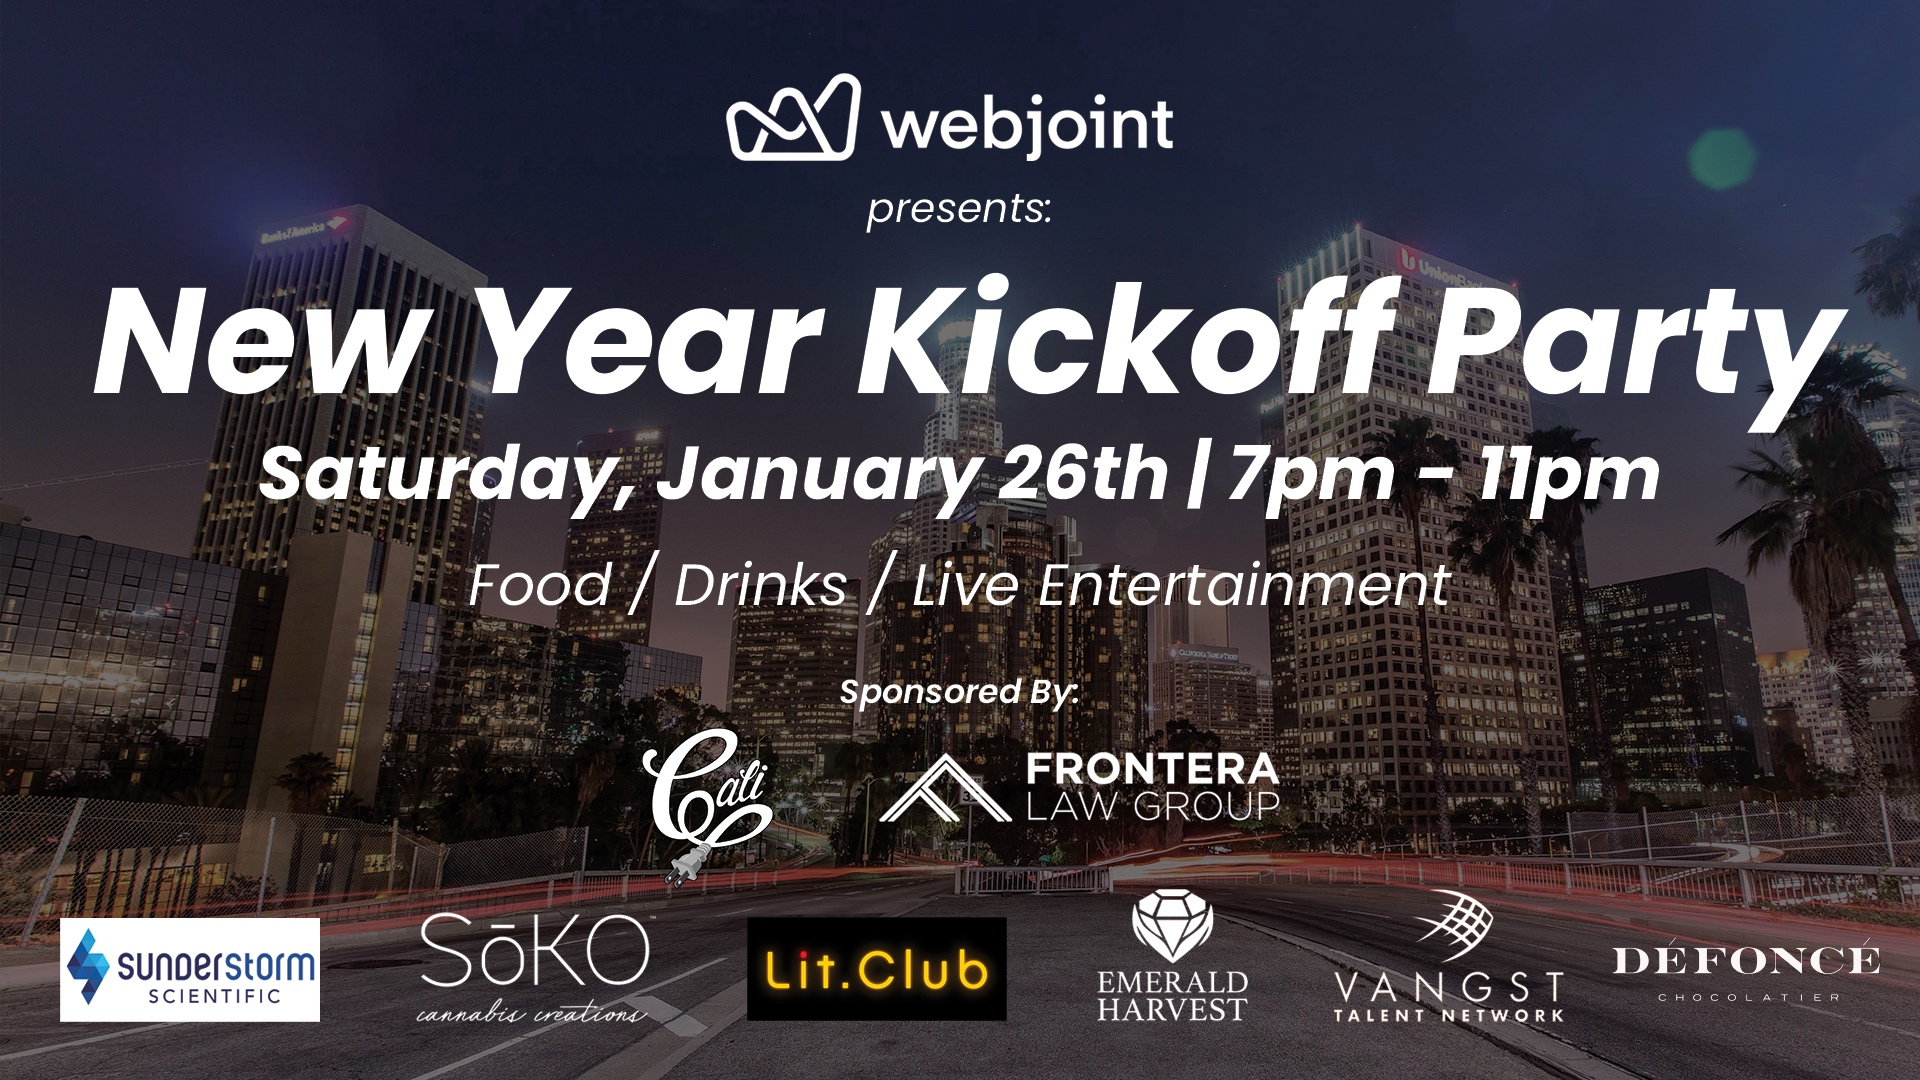 WebJoint x Cali Plug x Frontera Present: New Year Kick Off Party 2019